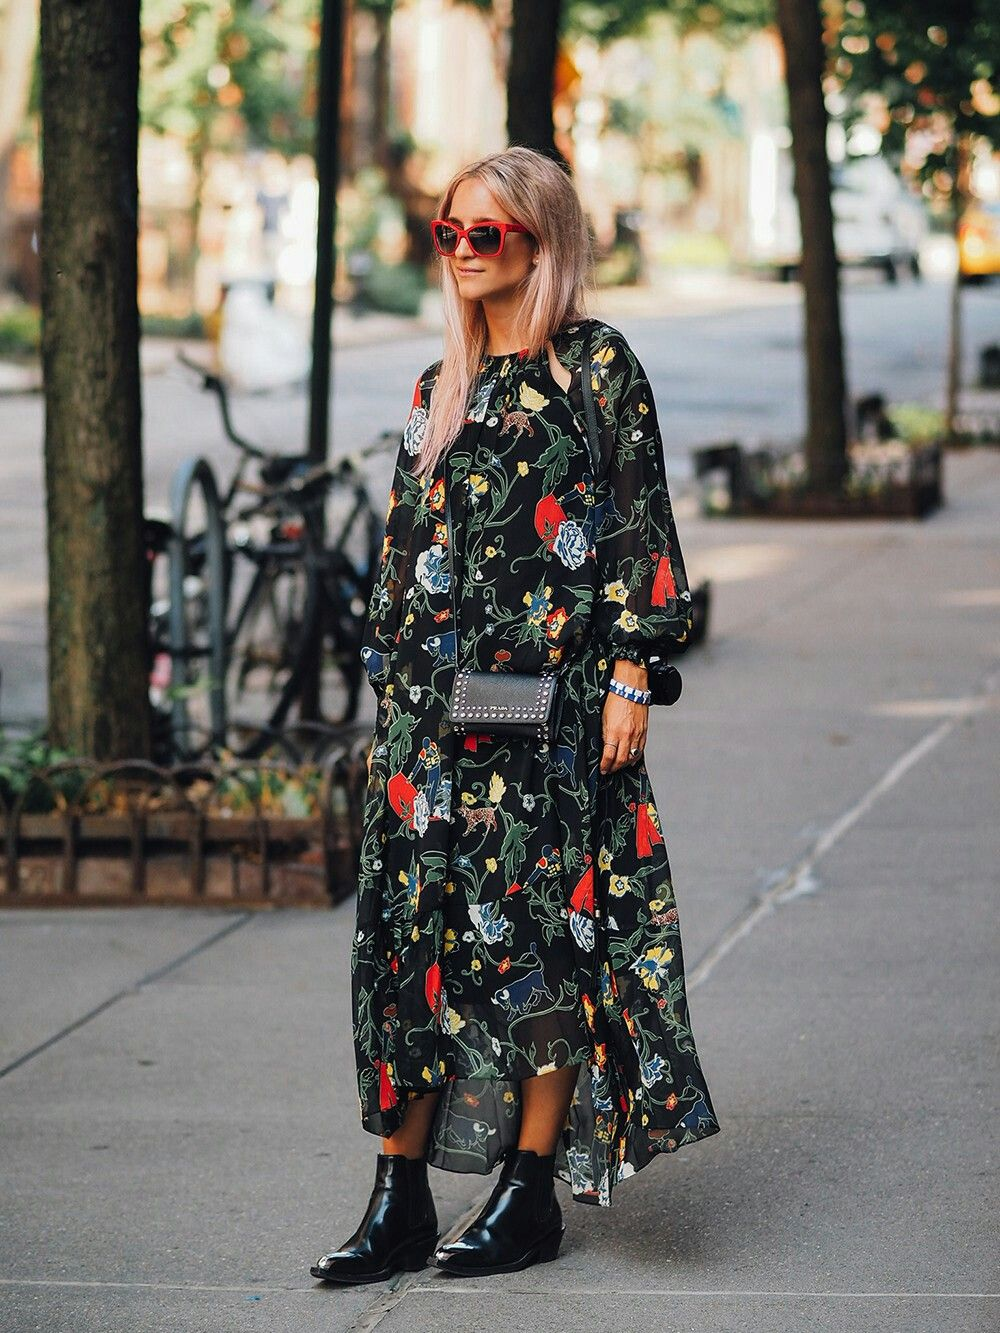 Floral Print Midi Dress And Ankle Boots Crossbody Small Bag Street Style Dress Winter Dress Outfits Fashion [ 1333 x 1000 Pixel ]